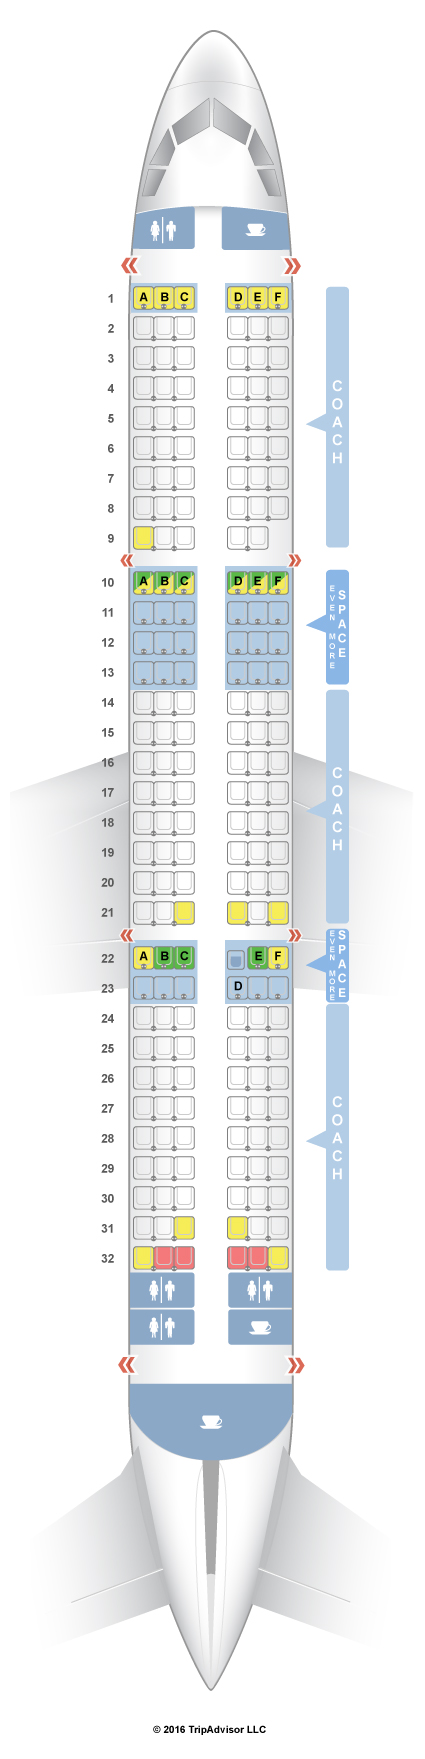 Jetblue Seating Chart Cablestreamco - Us airways a321 seat map